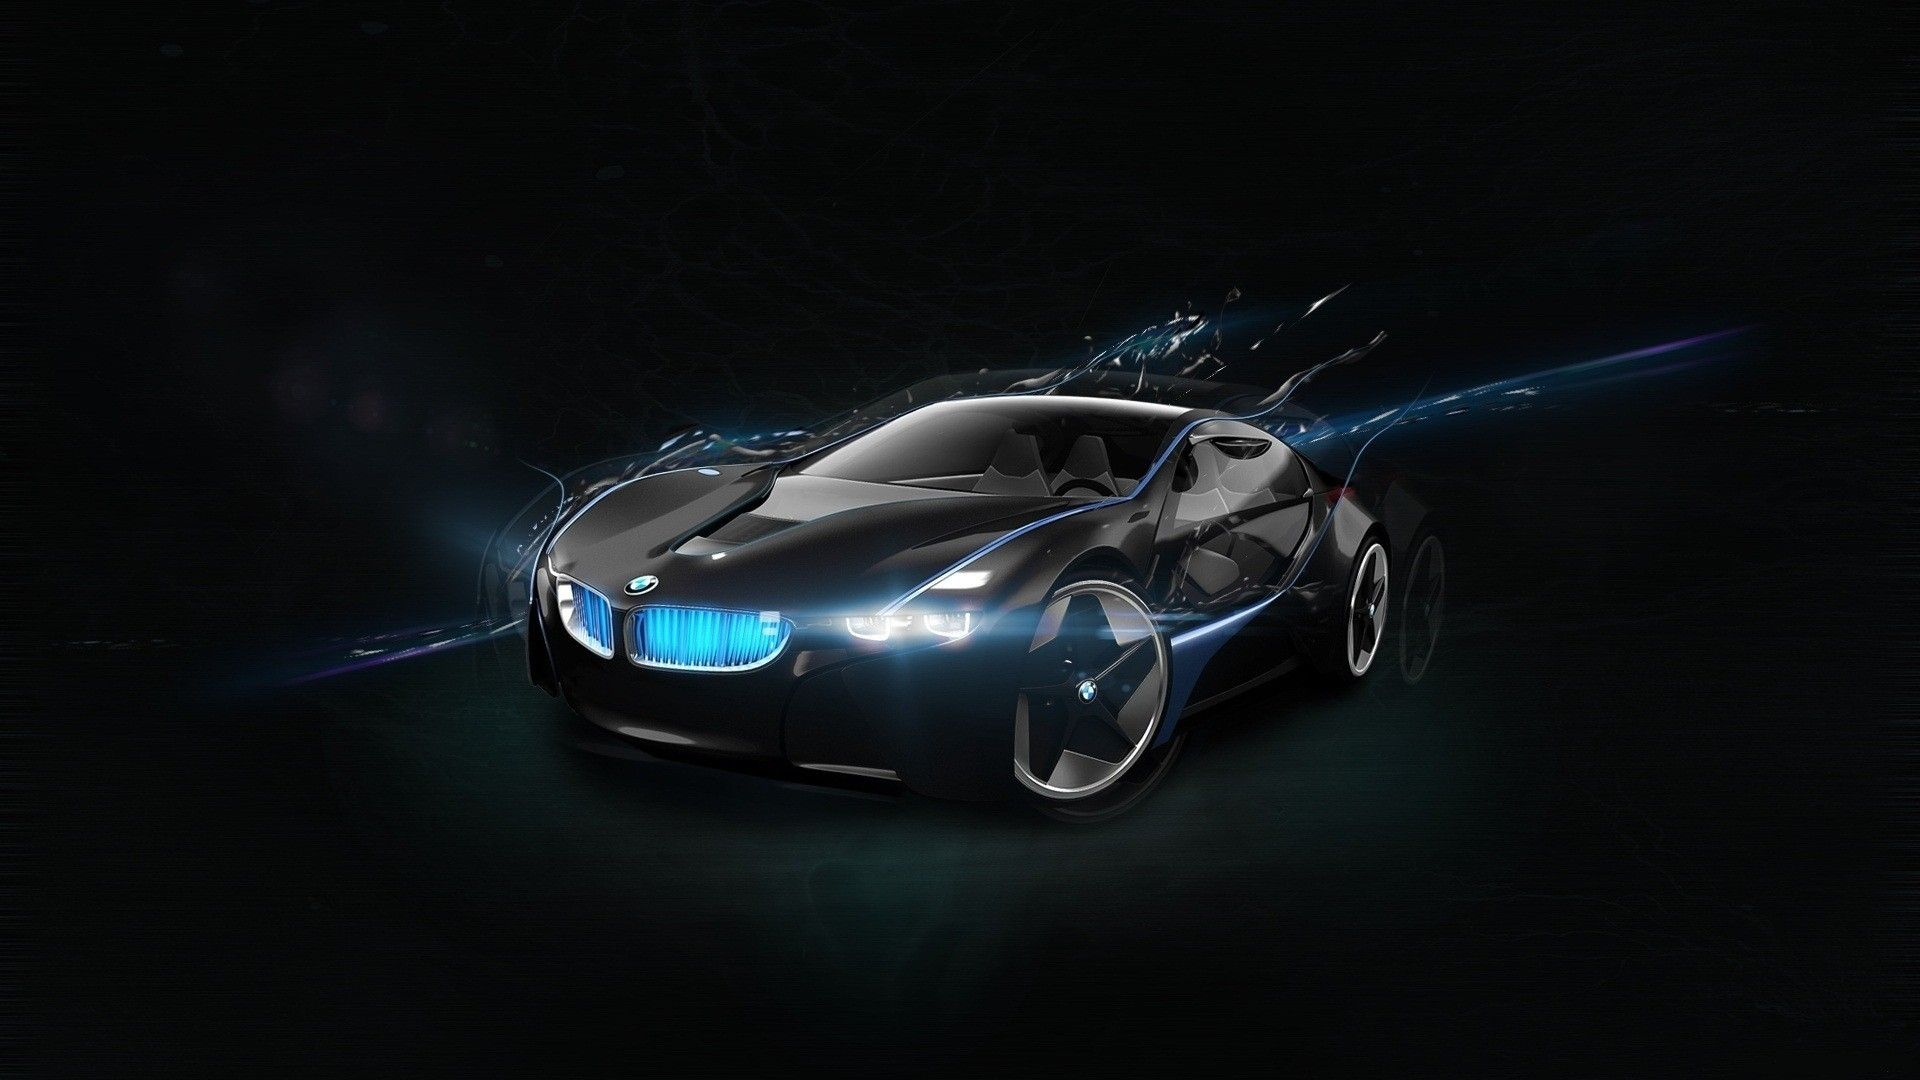 Amazing Photos Google Search Bmw Wallpapers Car Wallpapers Super Cars